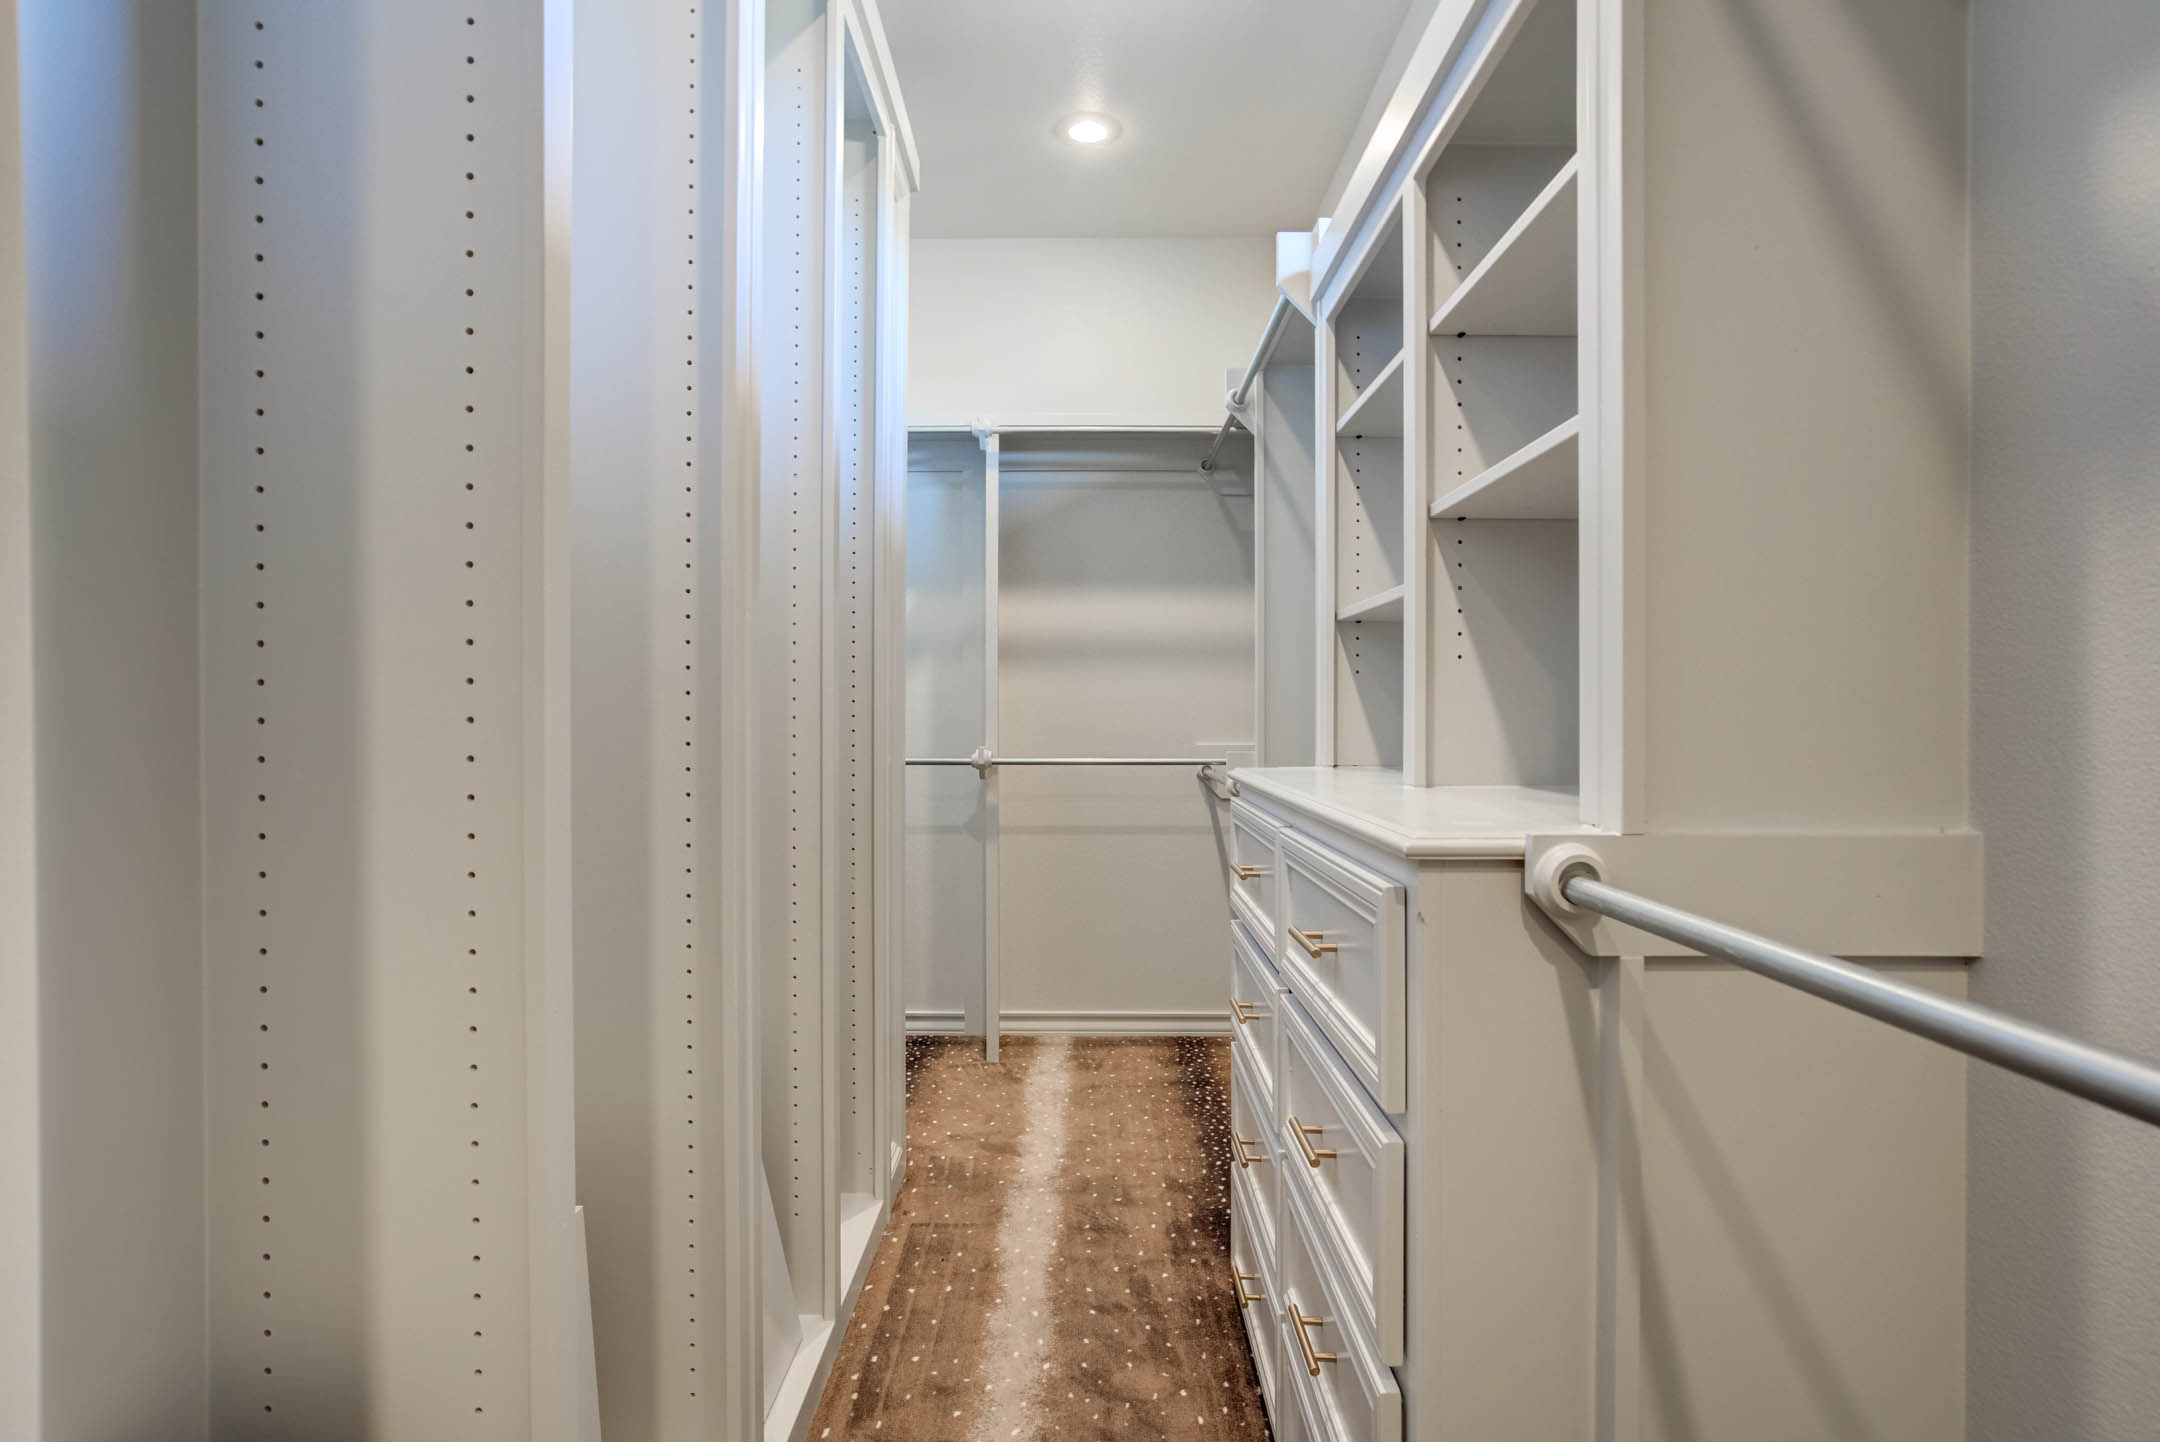 Spacious master closet in new home for sale near Lubbock, Texas.